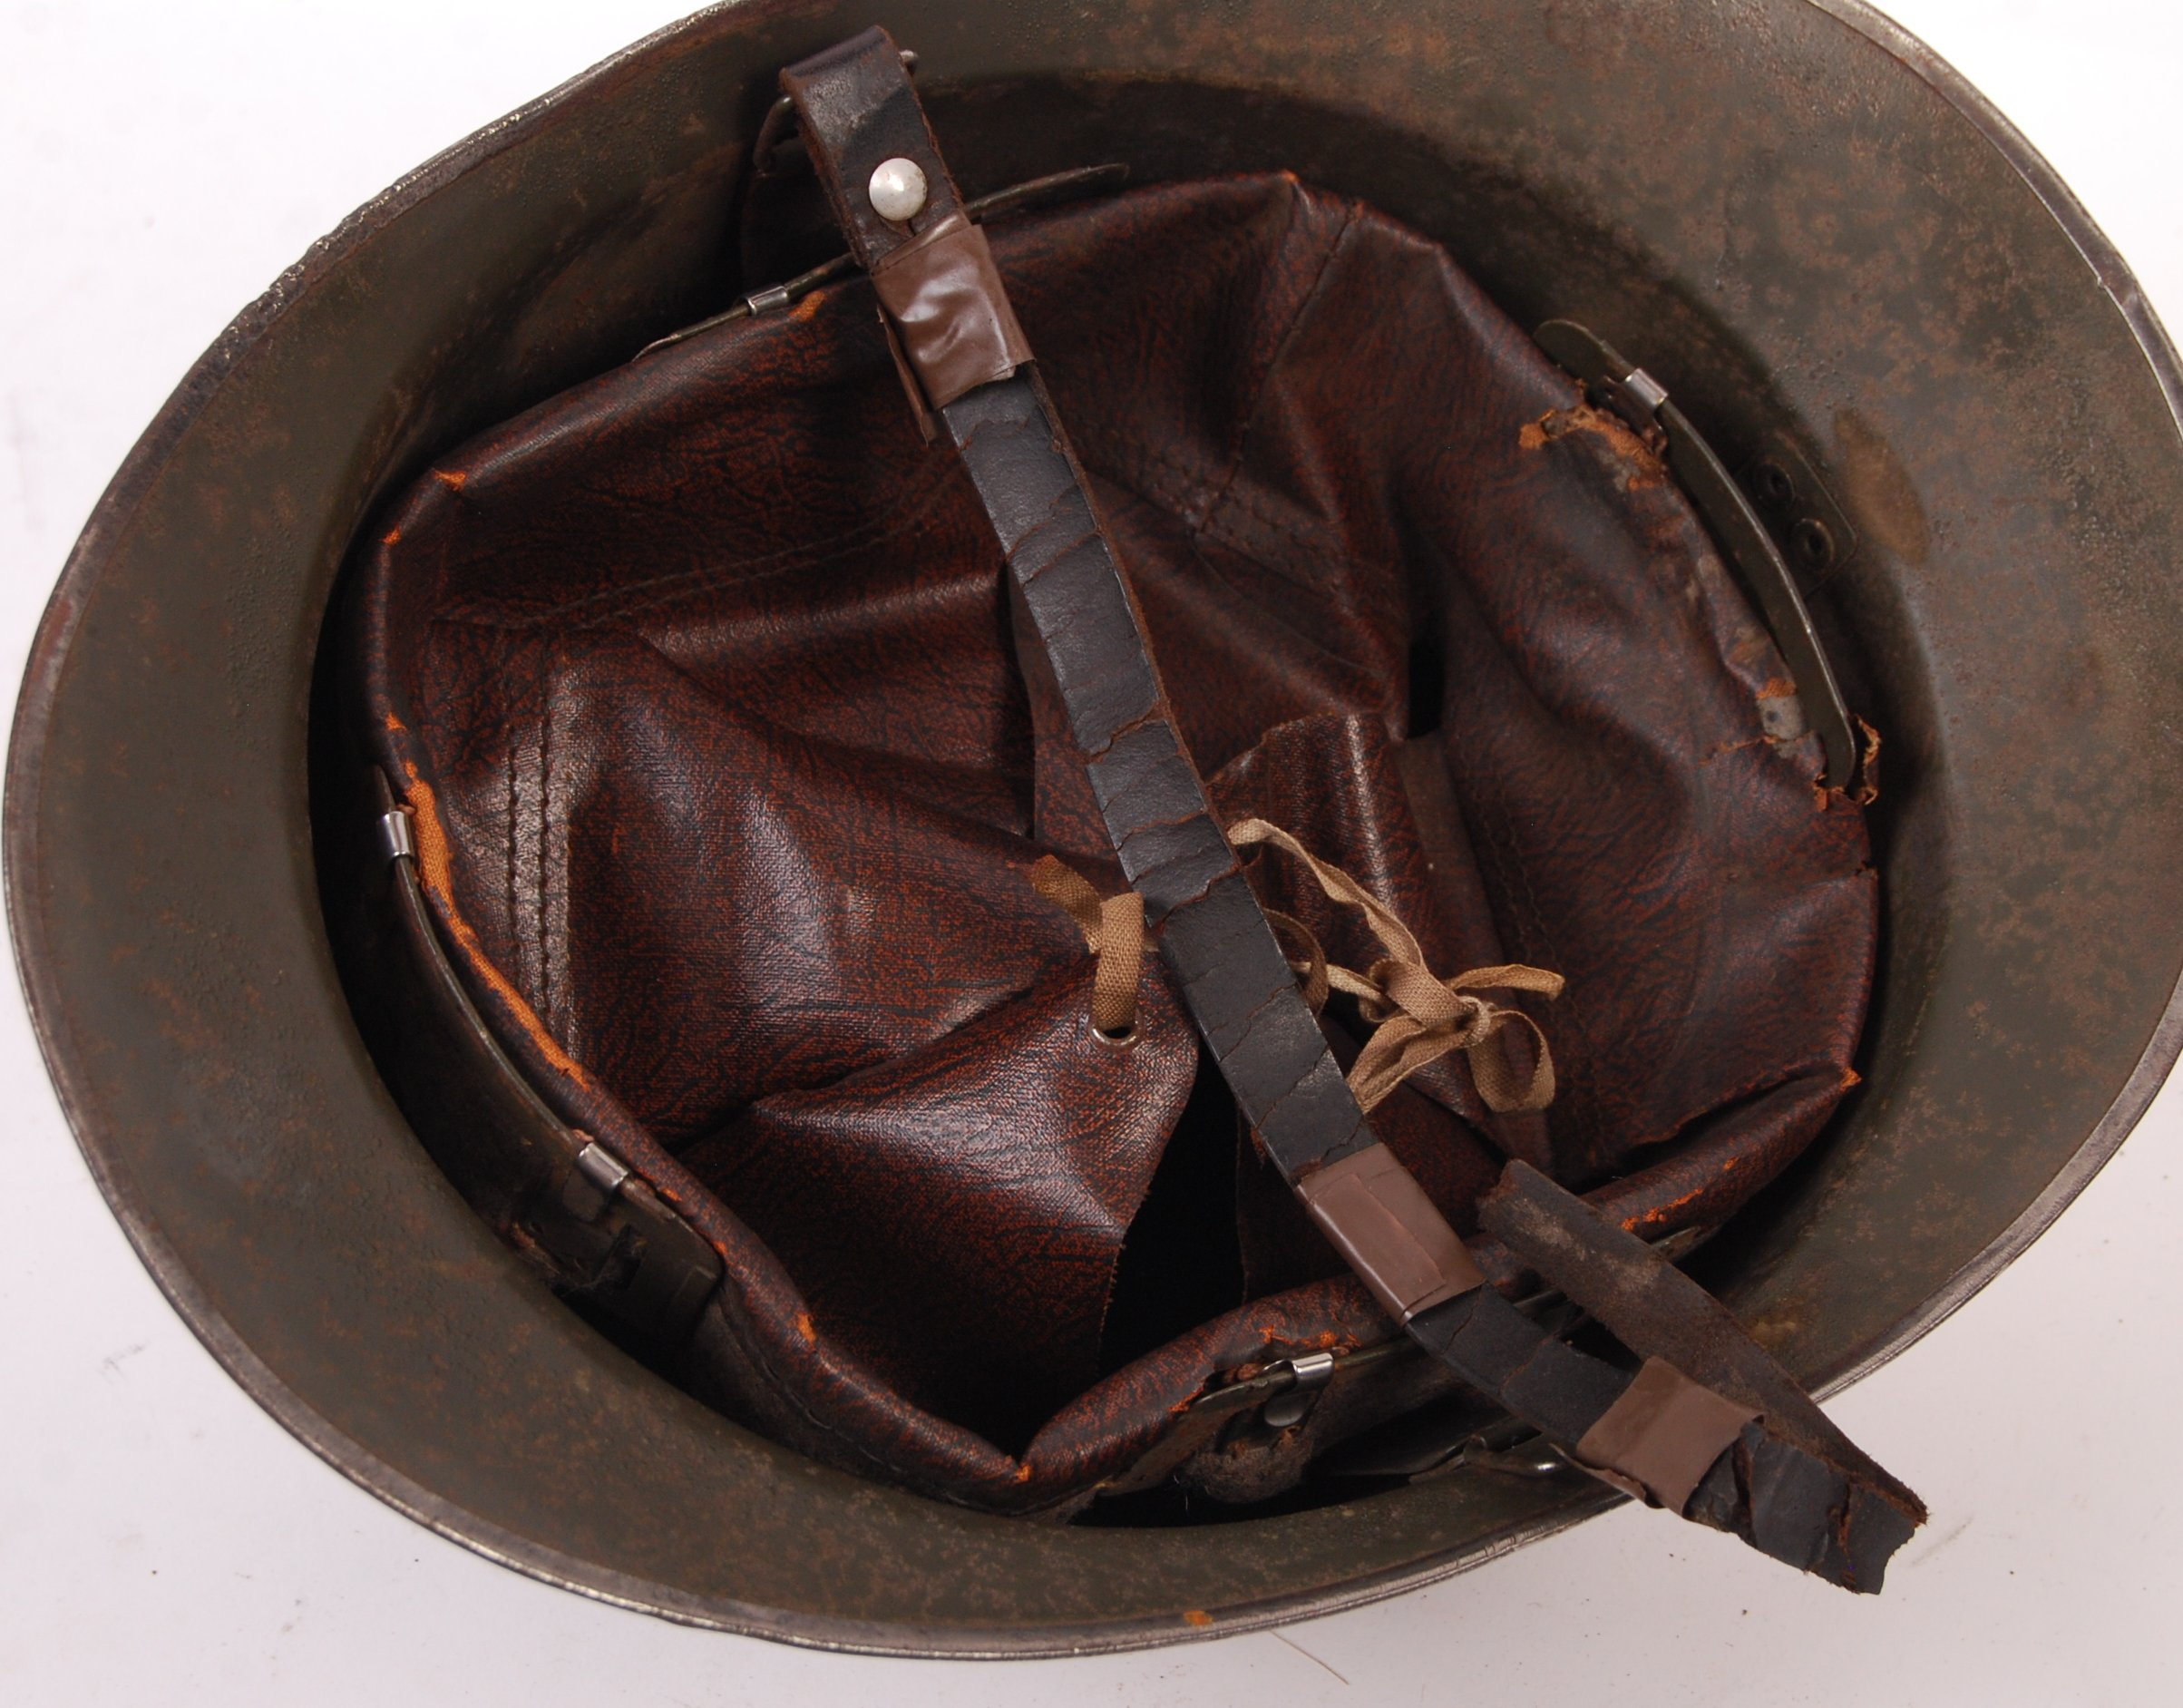 WWII SECOND WORLD WAR FRENCH M26 ADRIAN HELMET - Image 3 of 6